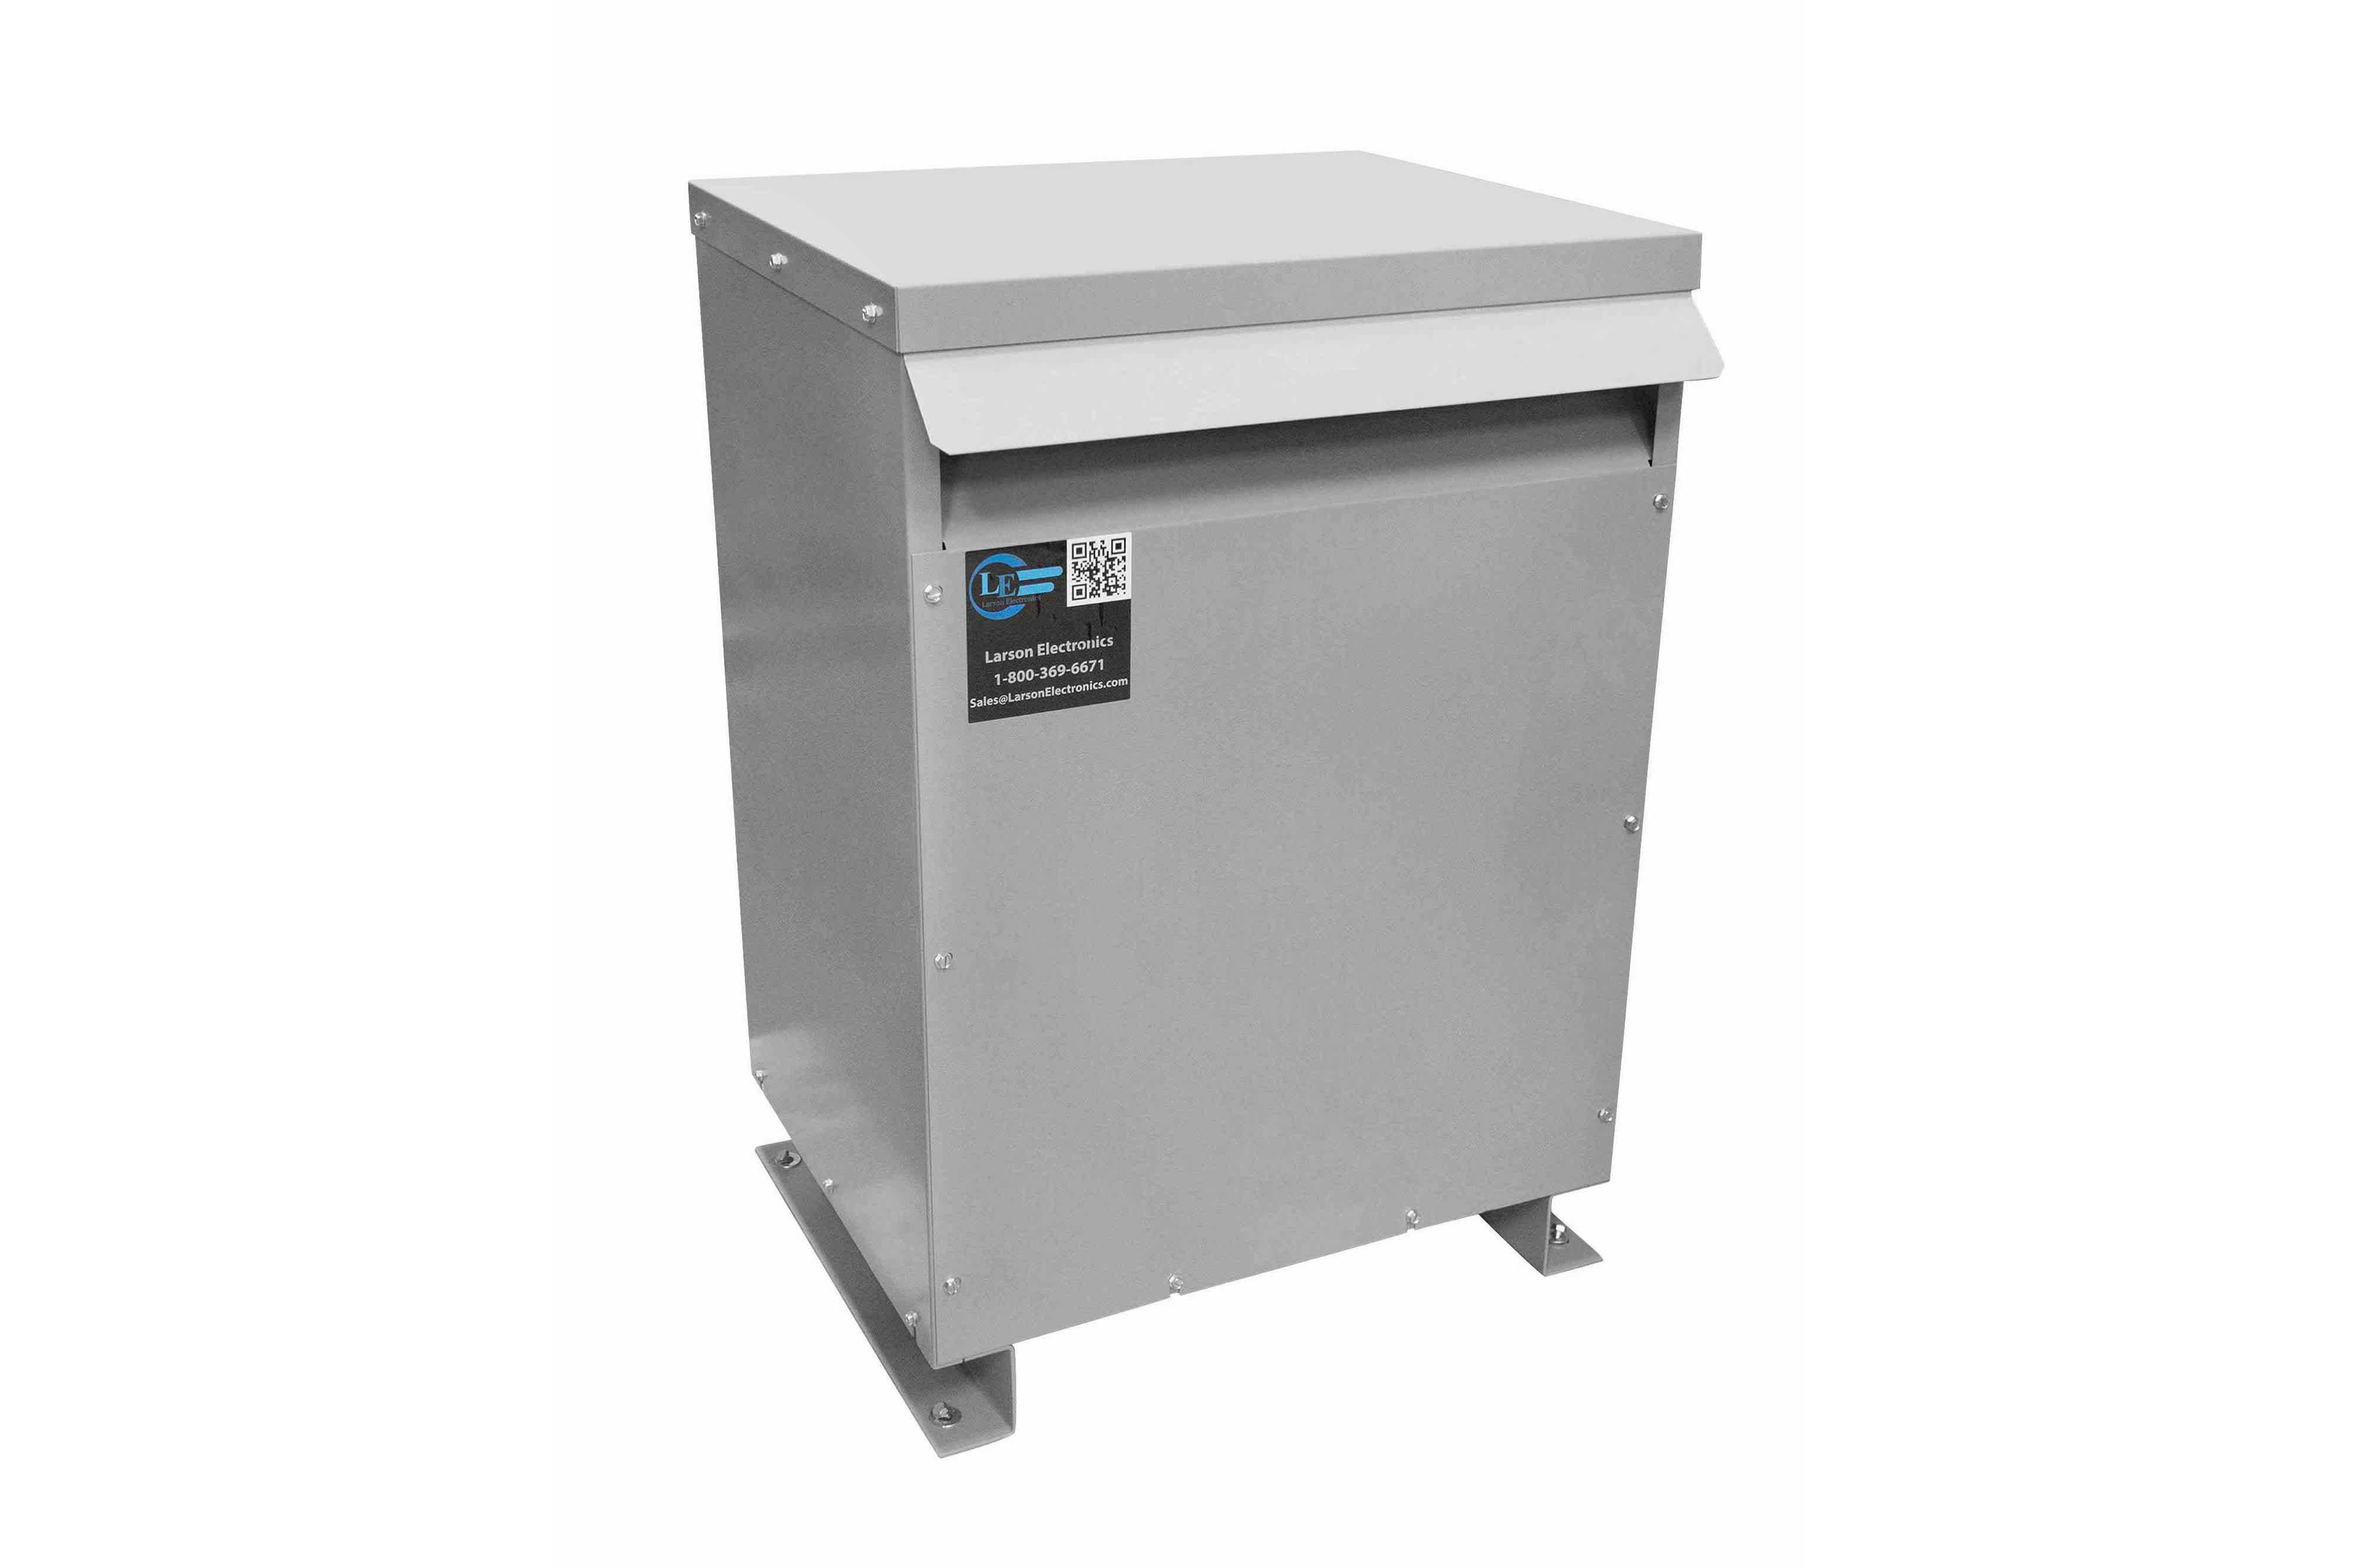 20 kVA 3PH Isolation Transformer, 600V Wye Primary, 415V Delta Secondary, N3R, Ventilated, 60 Hz